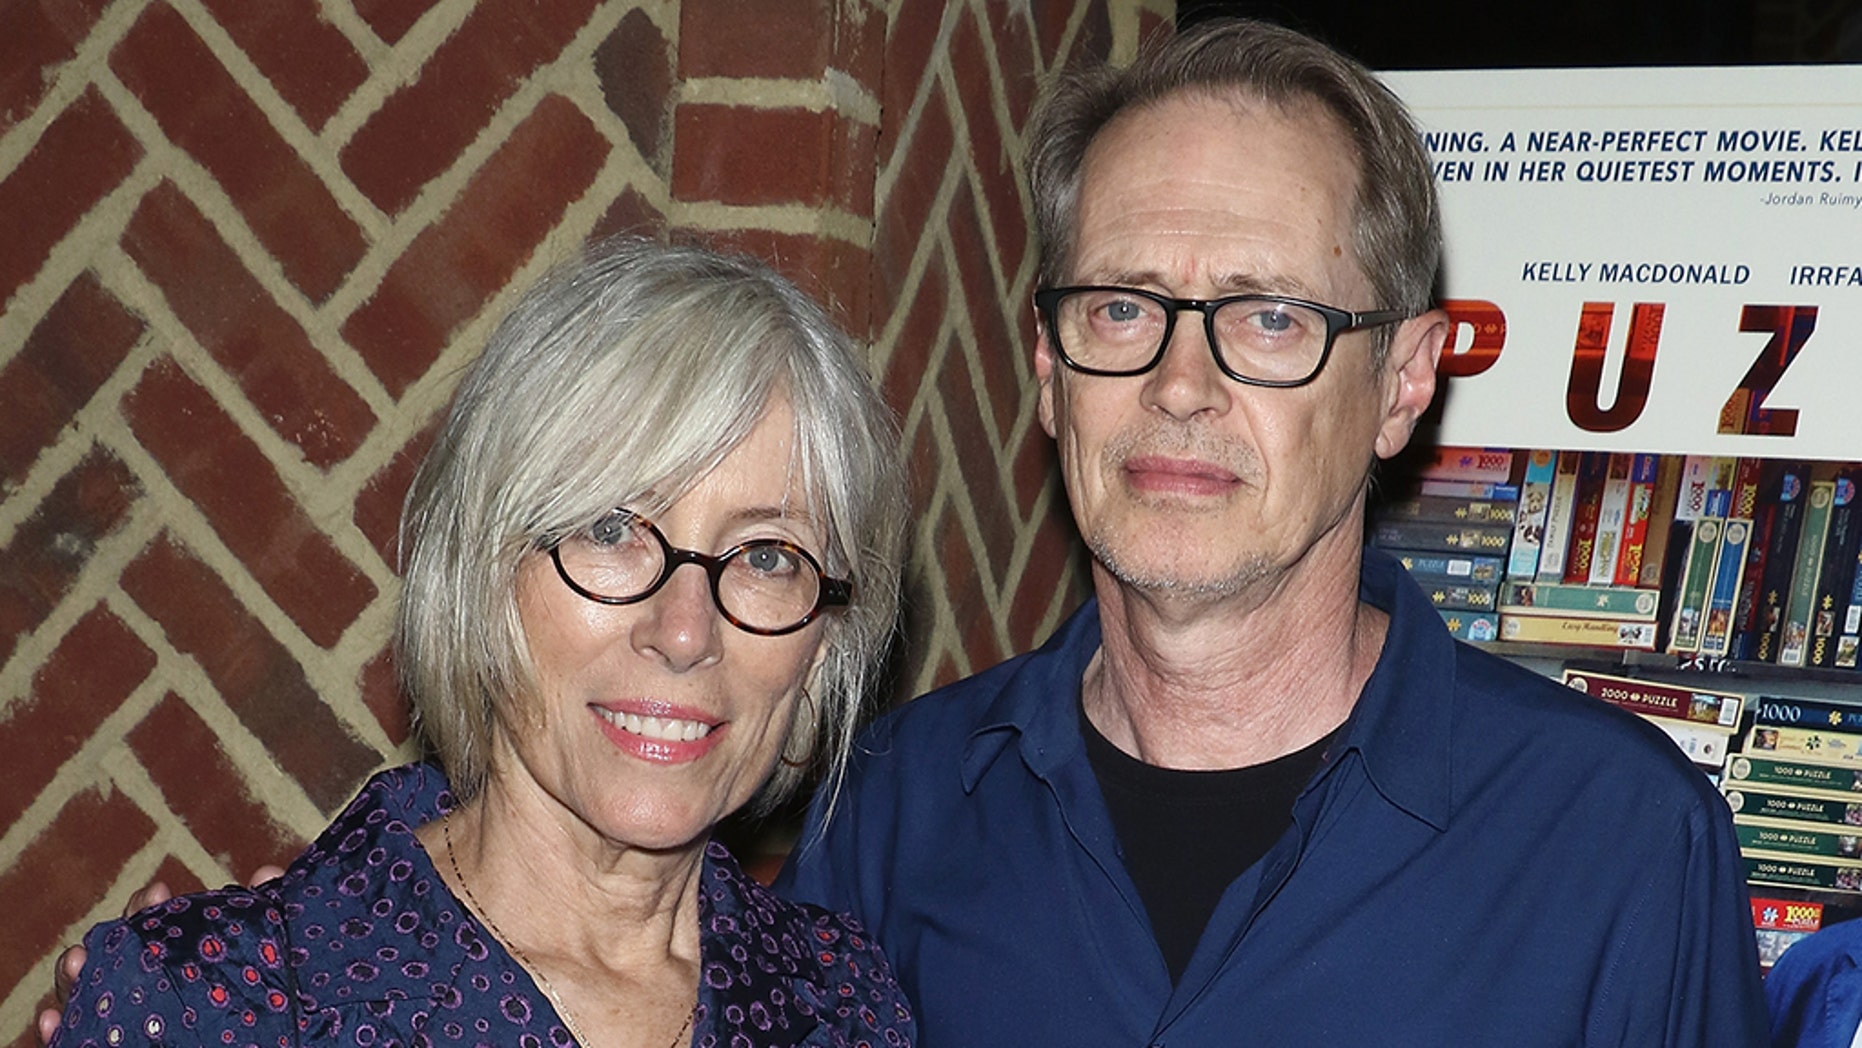 Steve Buscemi's Wife Jo Andres Has Passed Away At 65